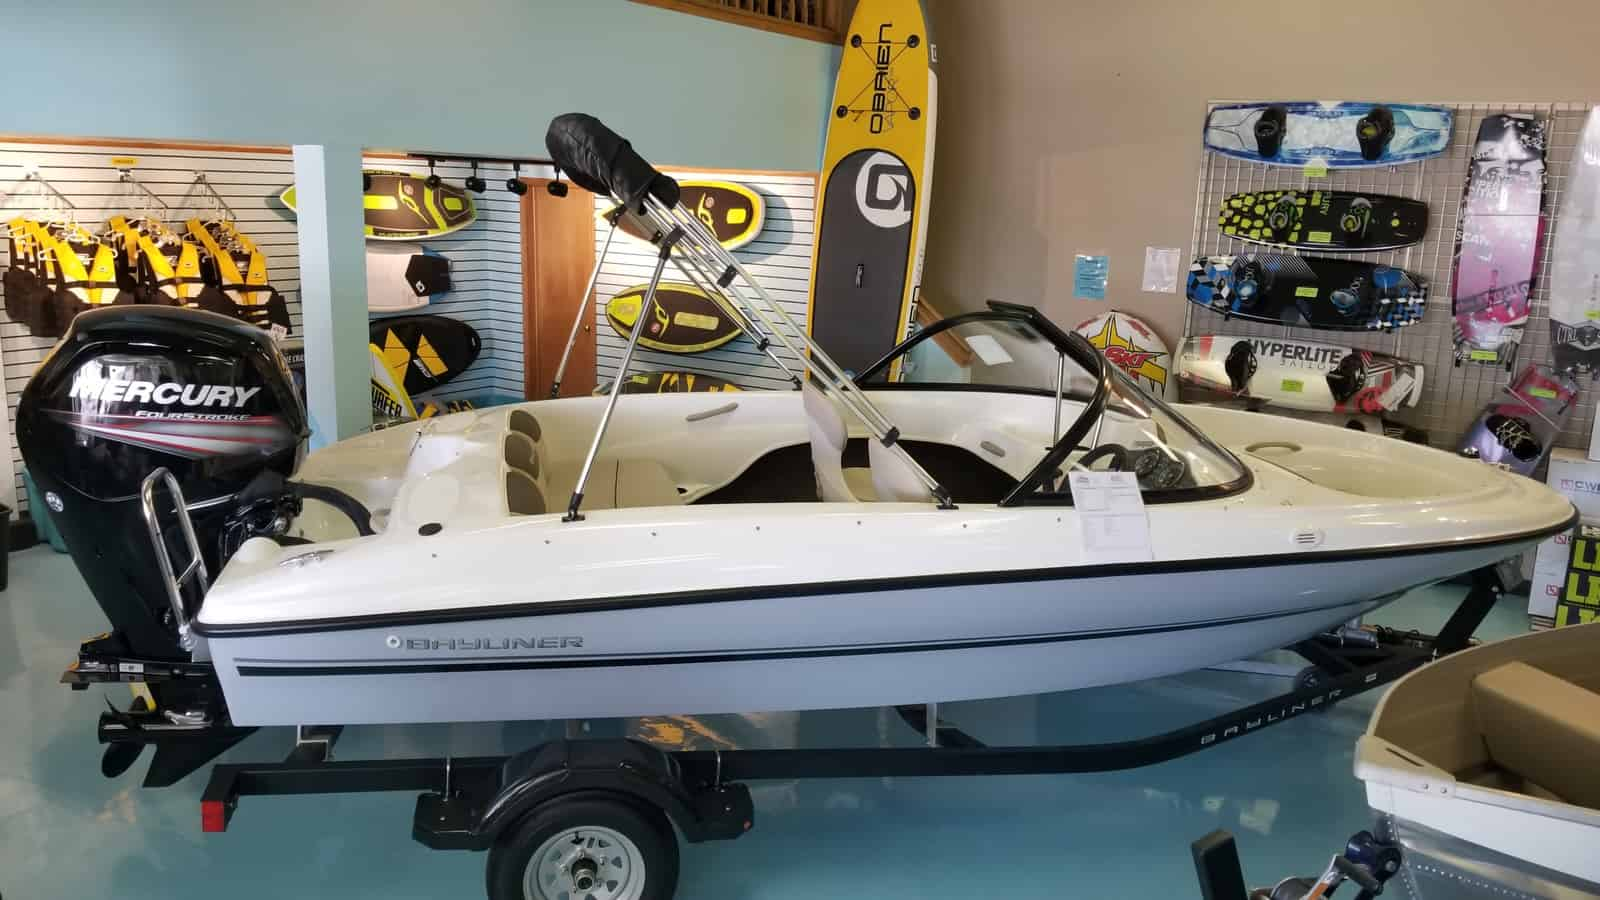 NEW 2018 Bayliner 160 OB - Shipwreck Marine